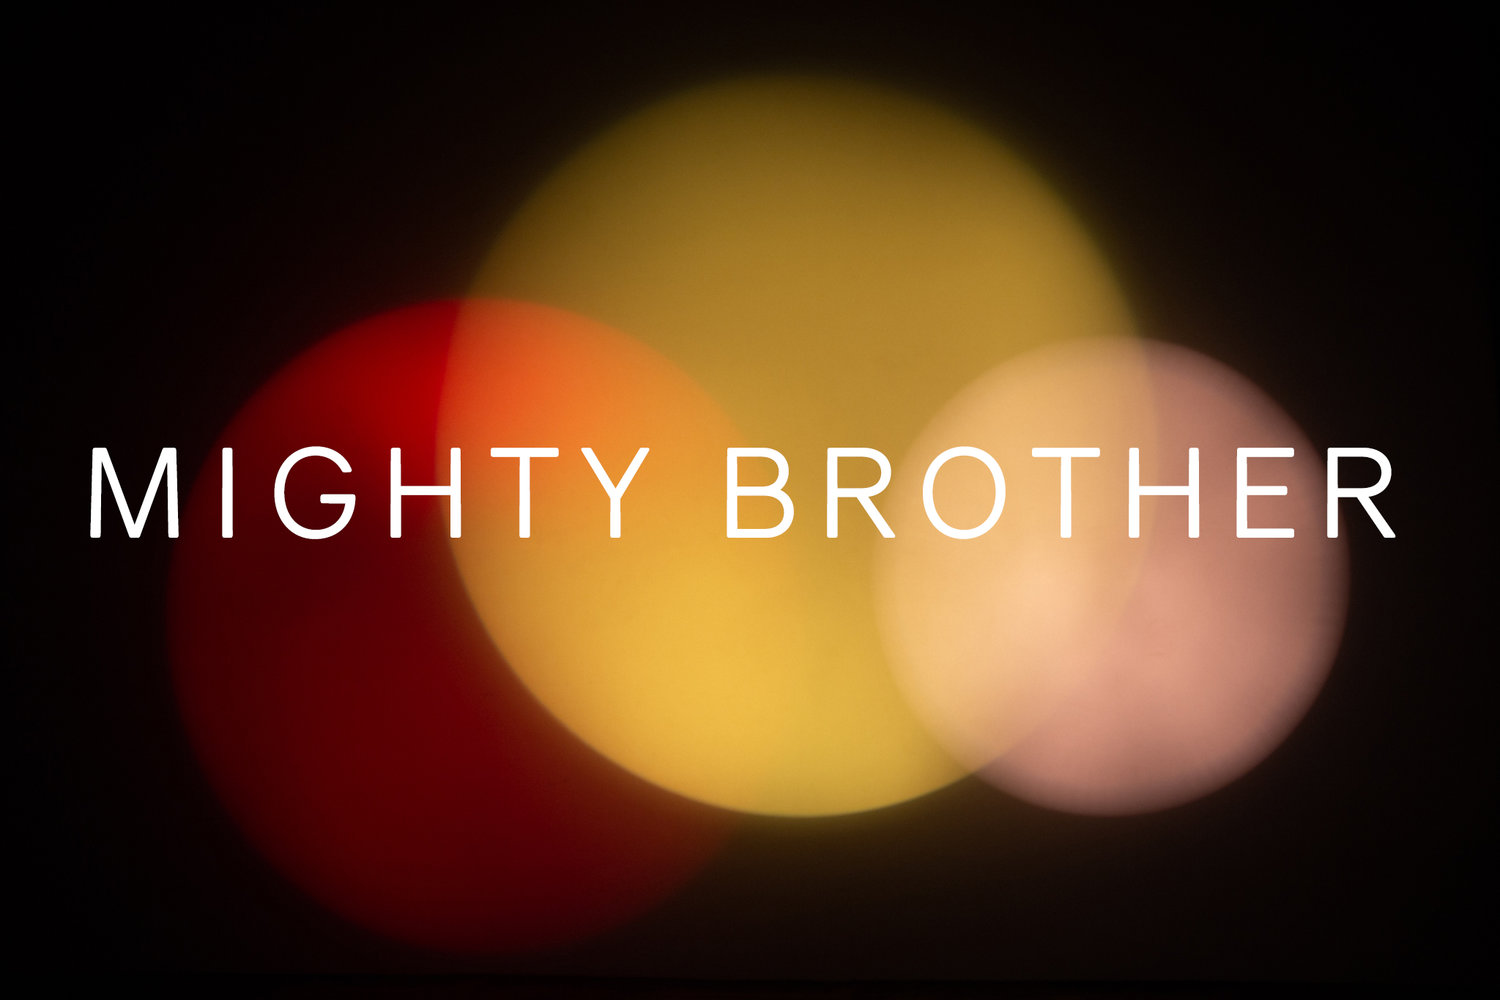 MIGHTY BROTHER